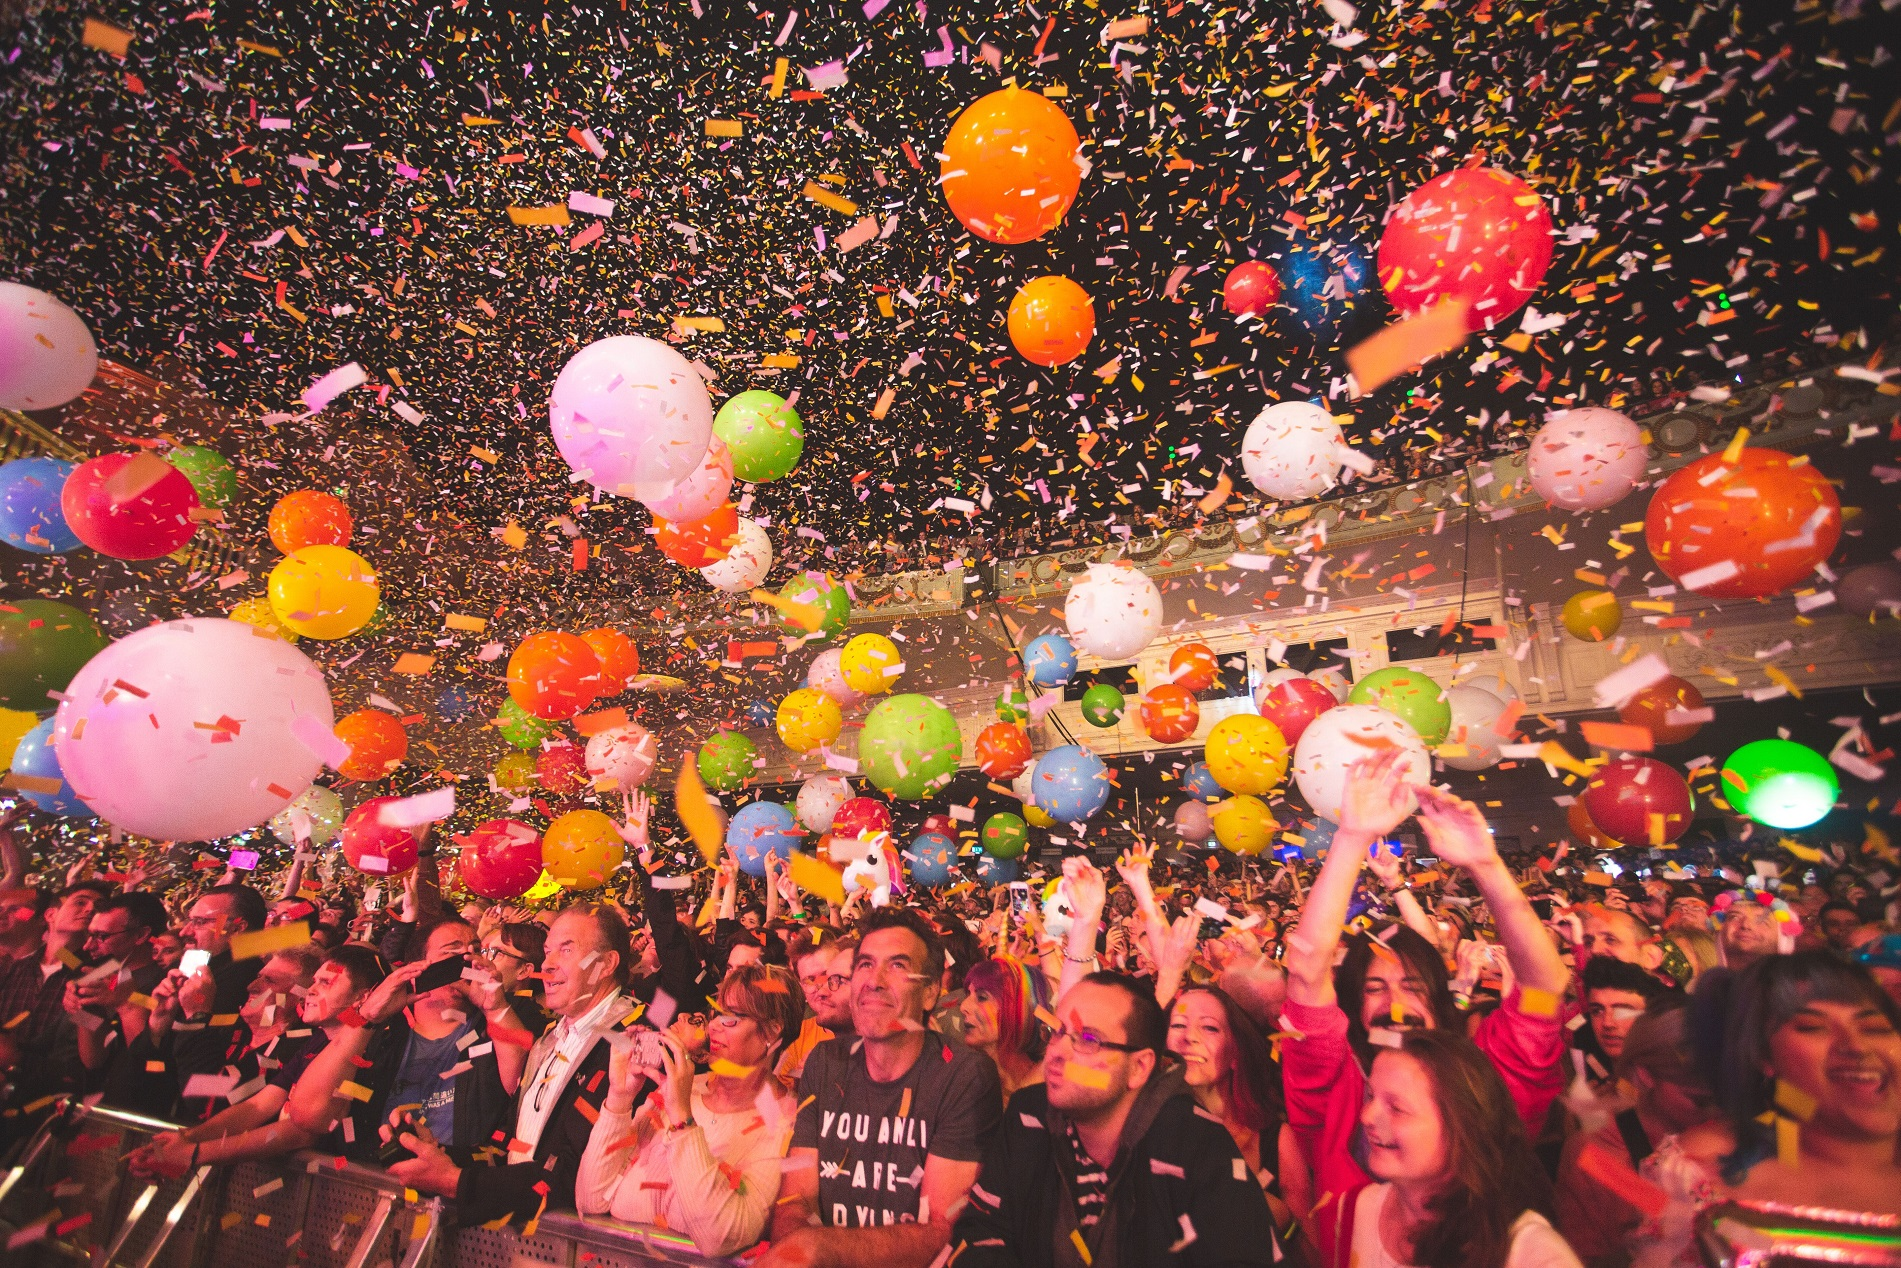 The Flaming Lips' crowd at Brixton Academy